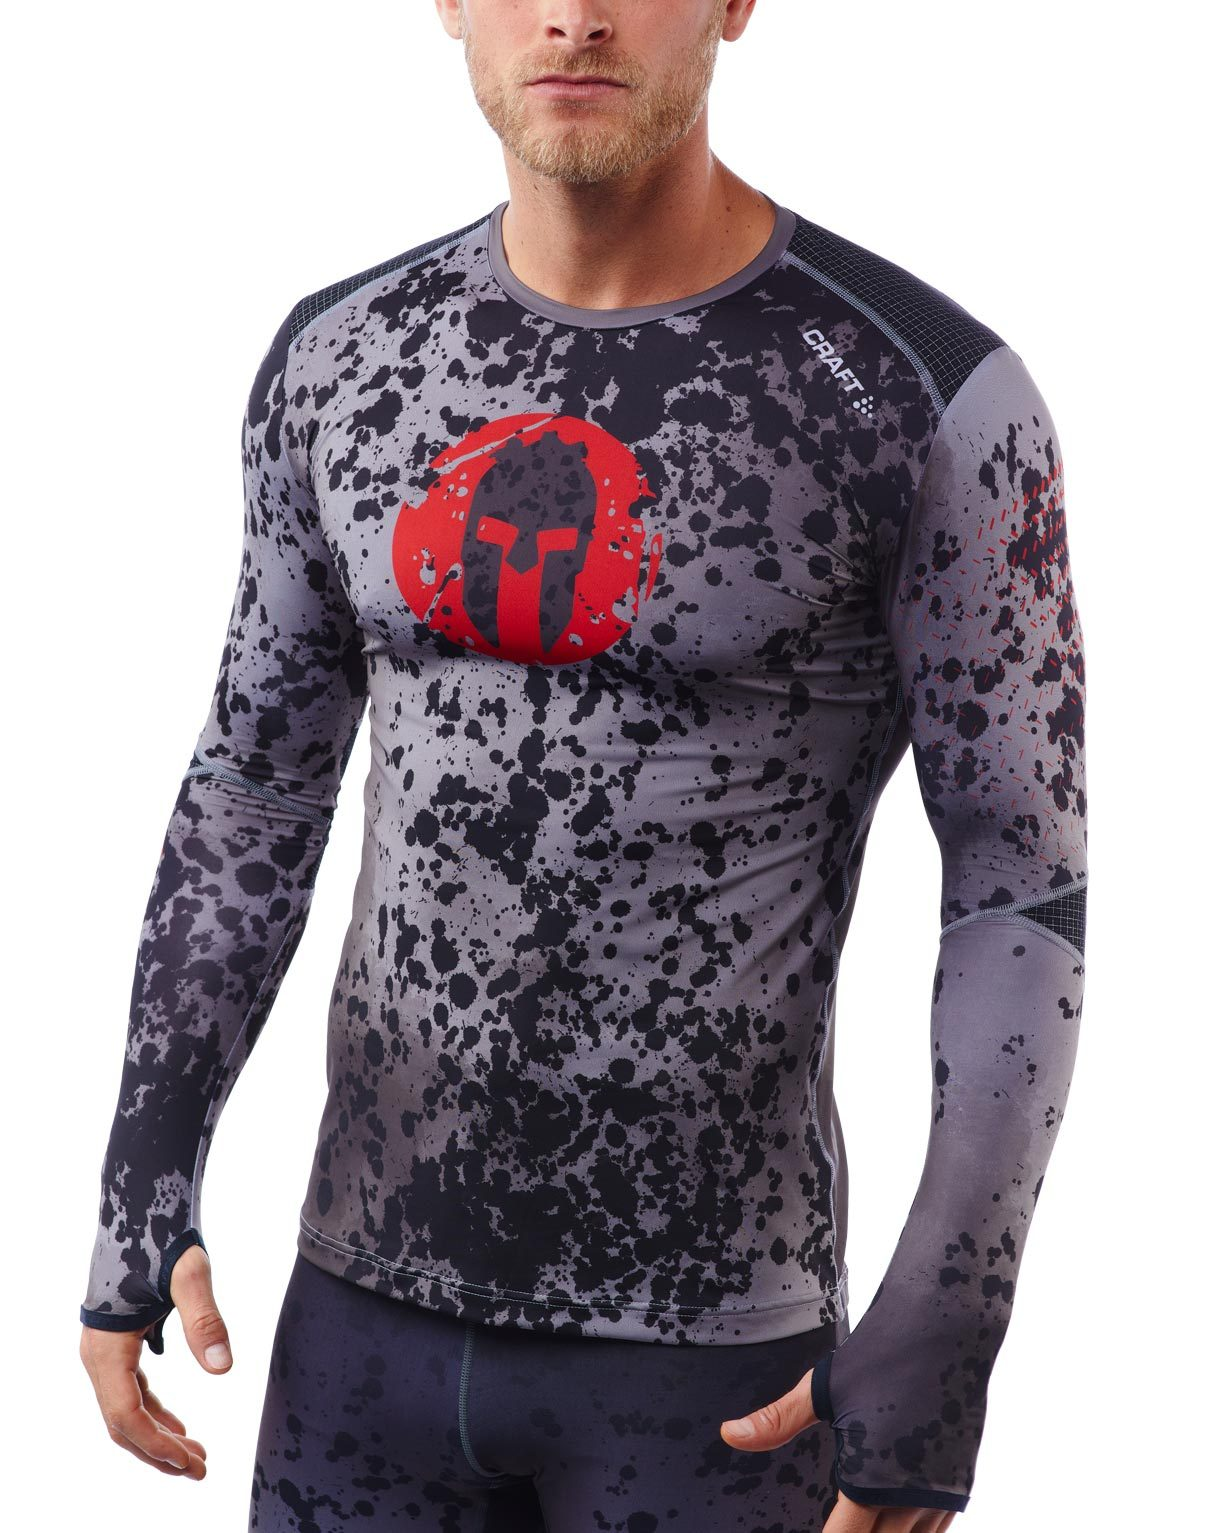 CRAFT SPARTAN By CRAFT Delta Compression LS Top - Men's Gray/Red S